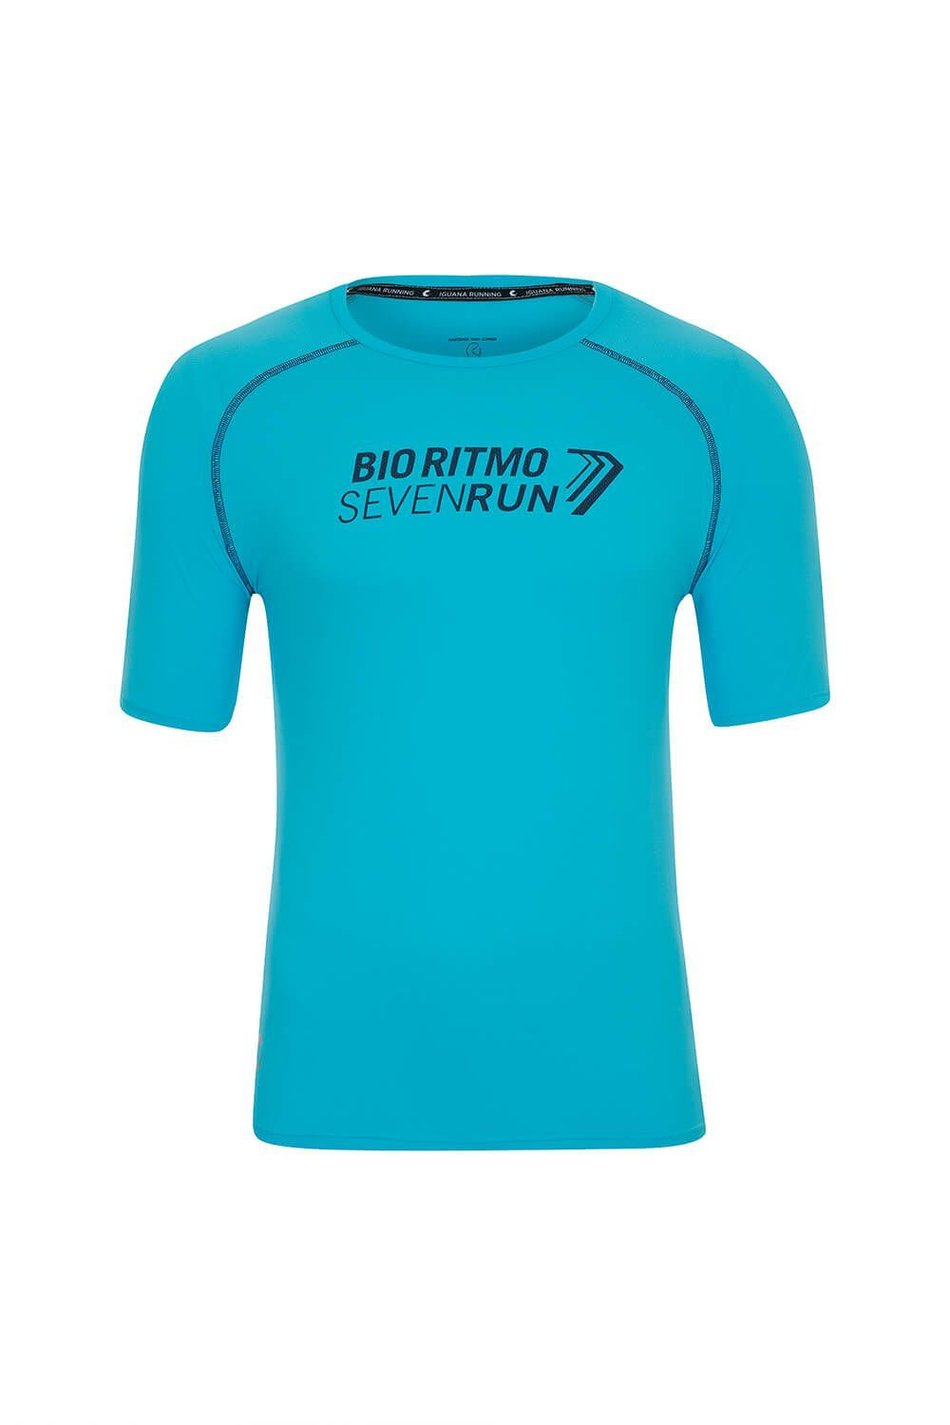 Camiseta Atleta Seven Run 2018 Mc Masc Azul